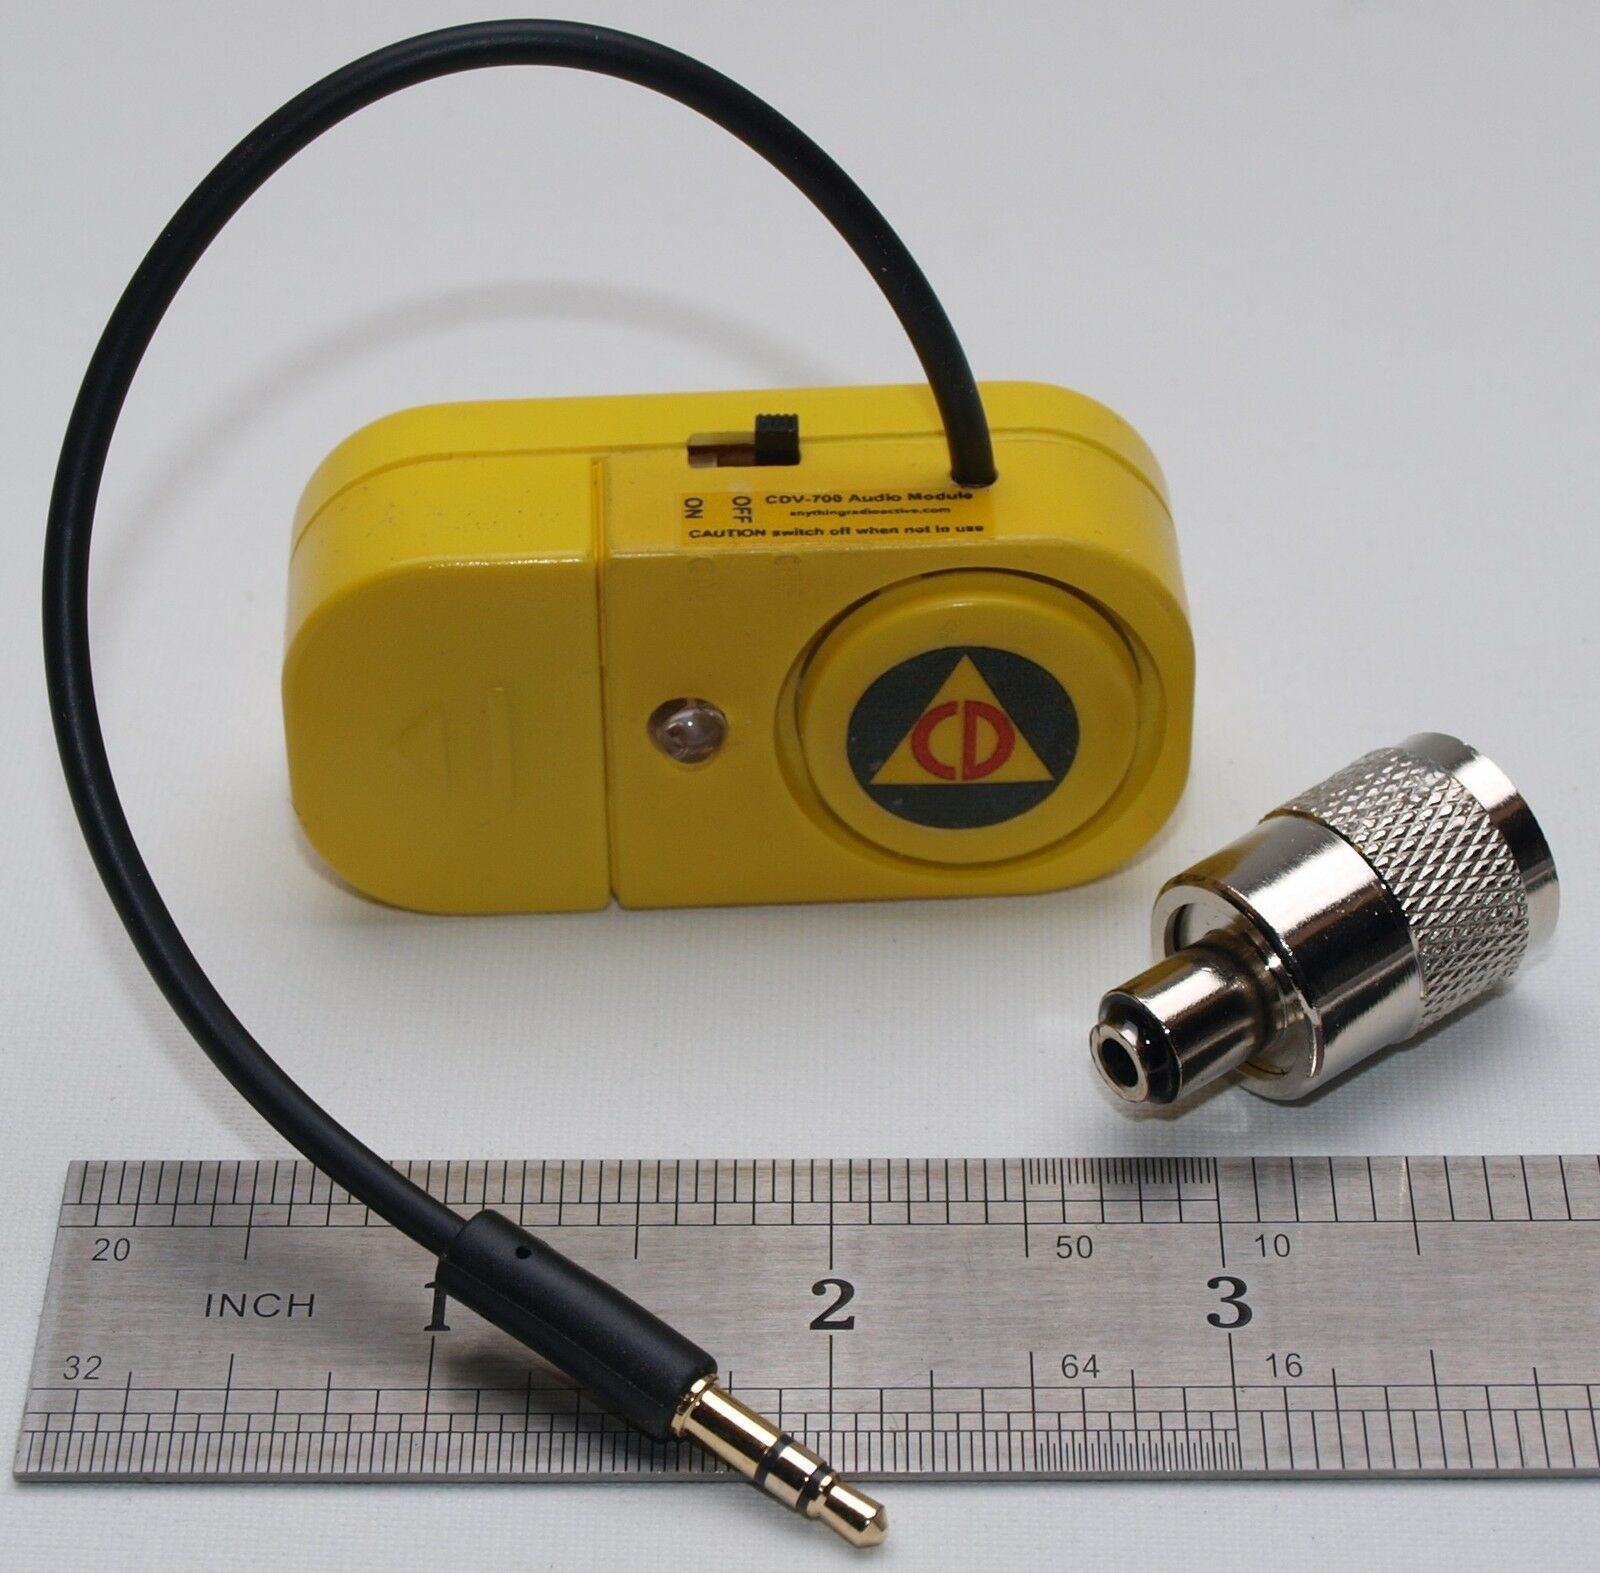 Cdv 700 Geiger Counter Mini Speaker With Led Flasher Headphone 1 Sur 2 Voir Plus